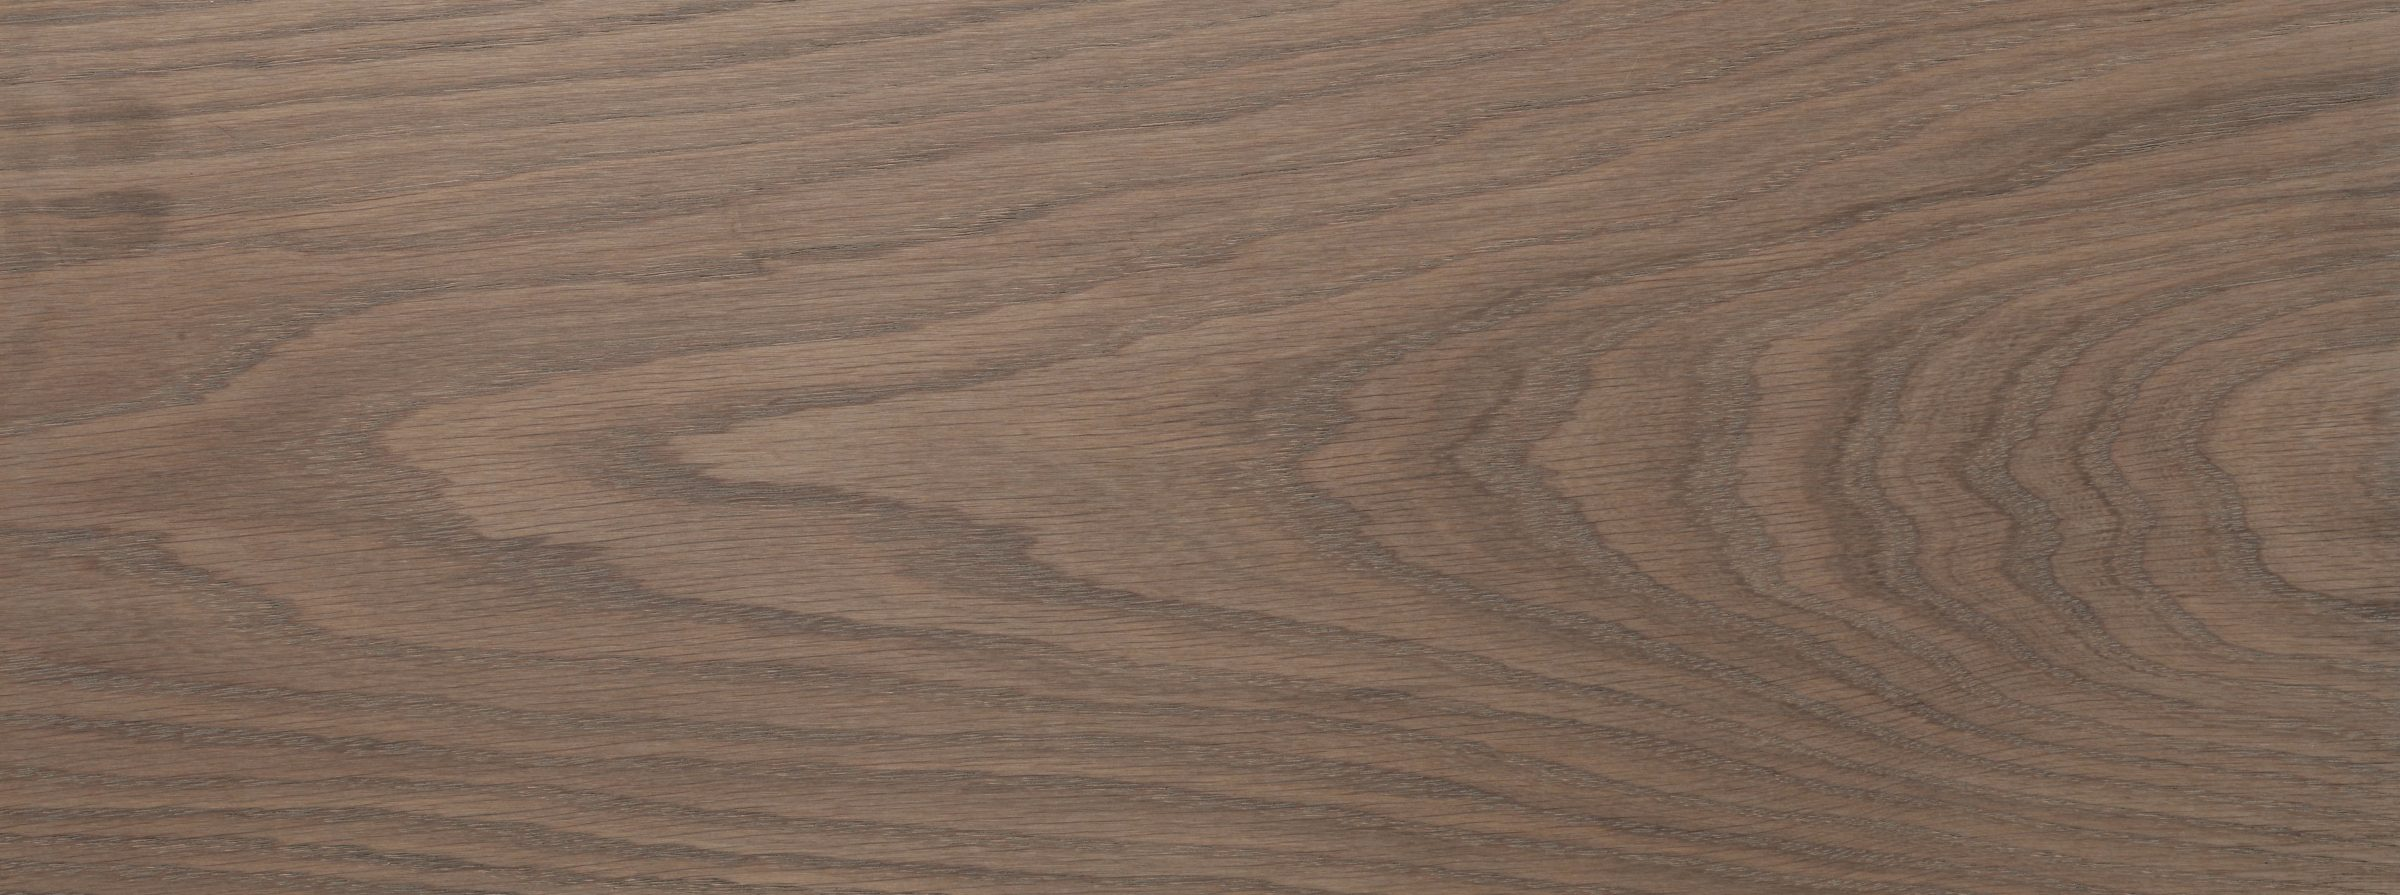 Oak 14mm engineered board, Oyster, 1sqm pack